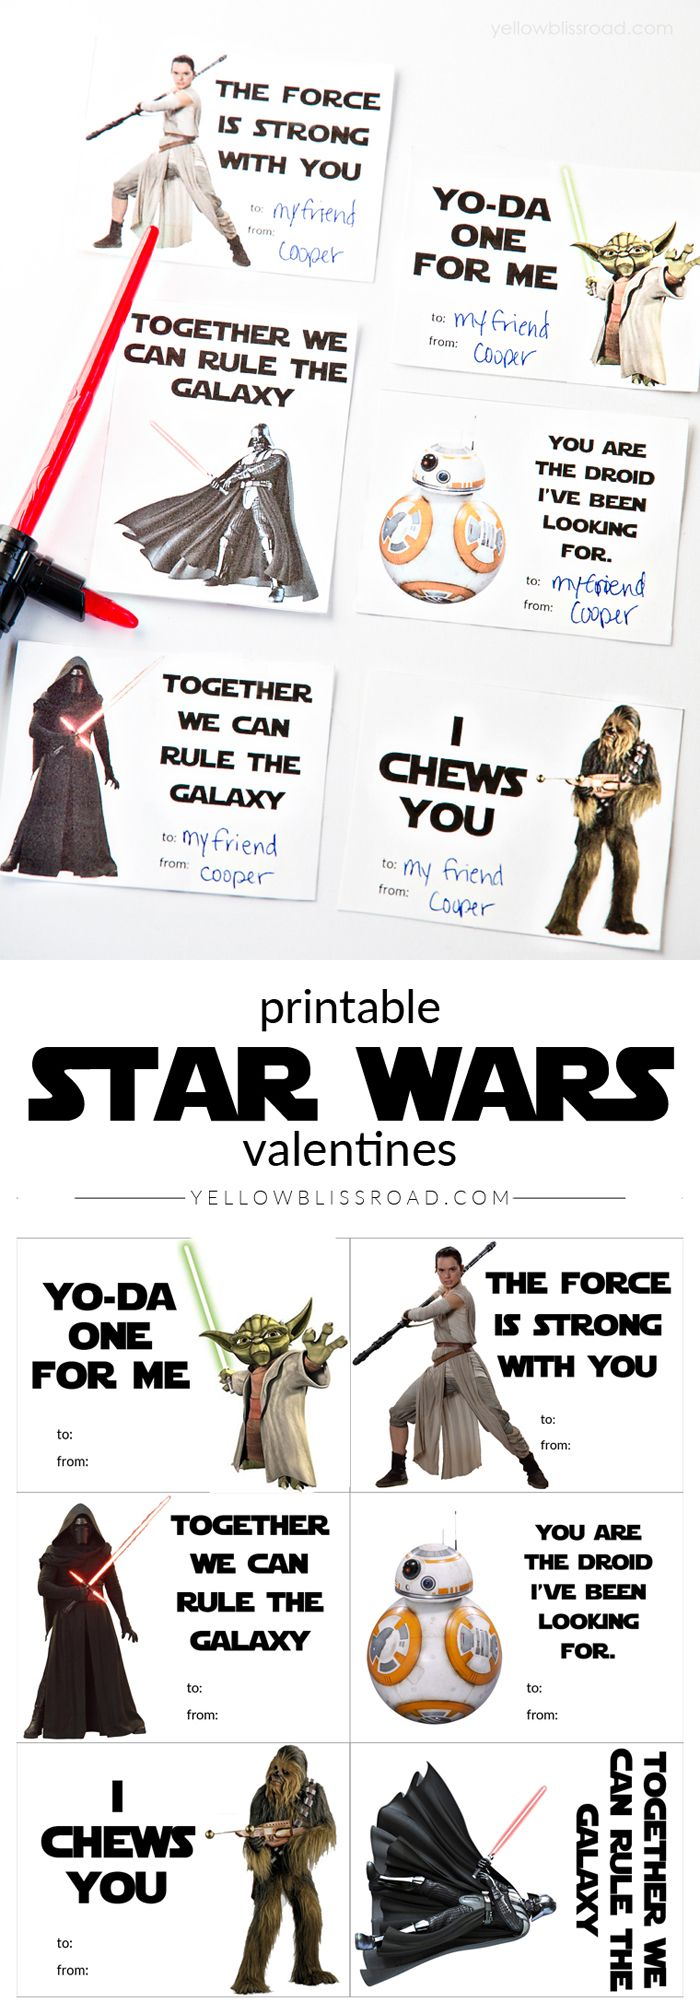 Printable Star Wars Valentines with New and Classic Characters